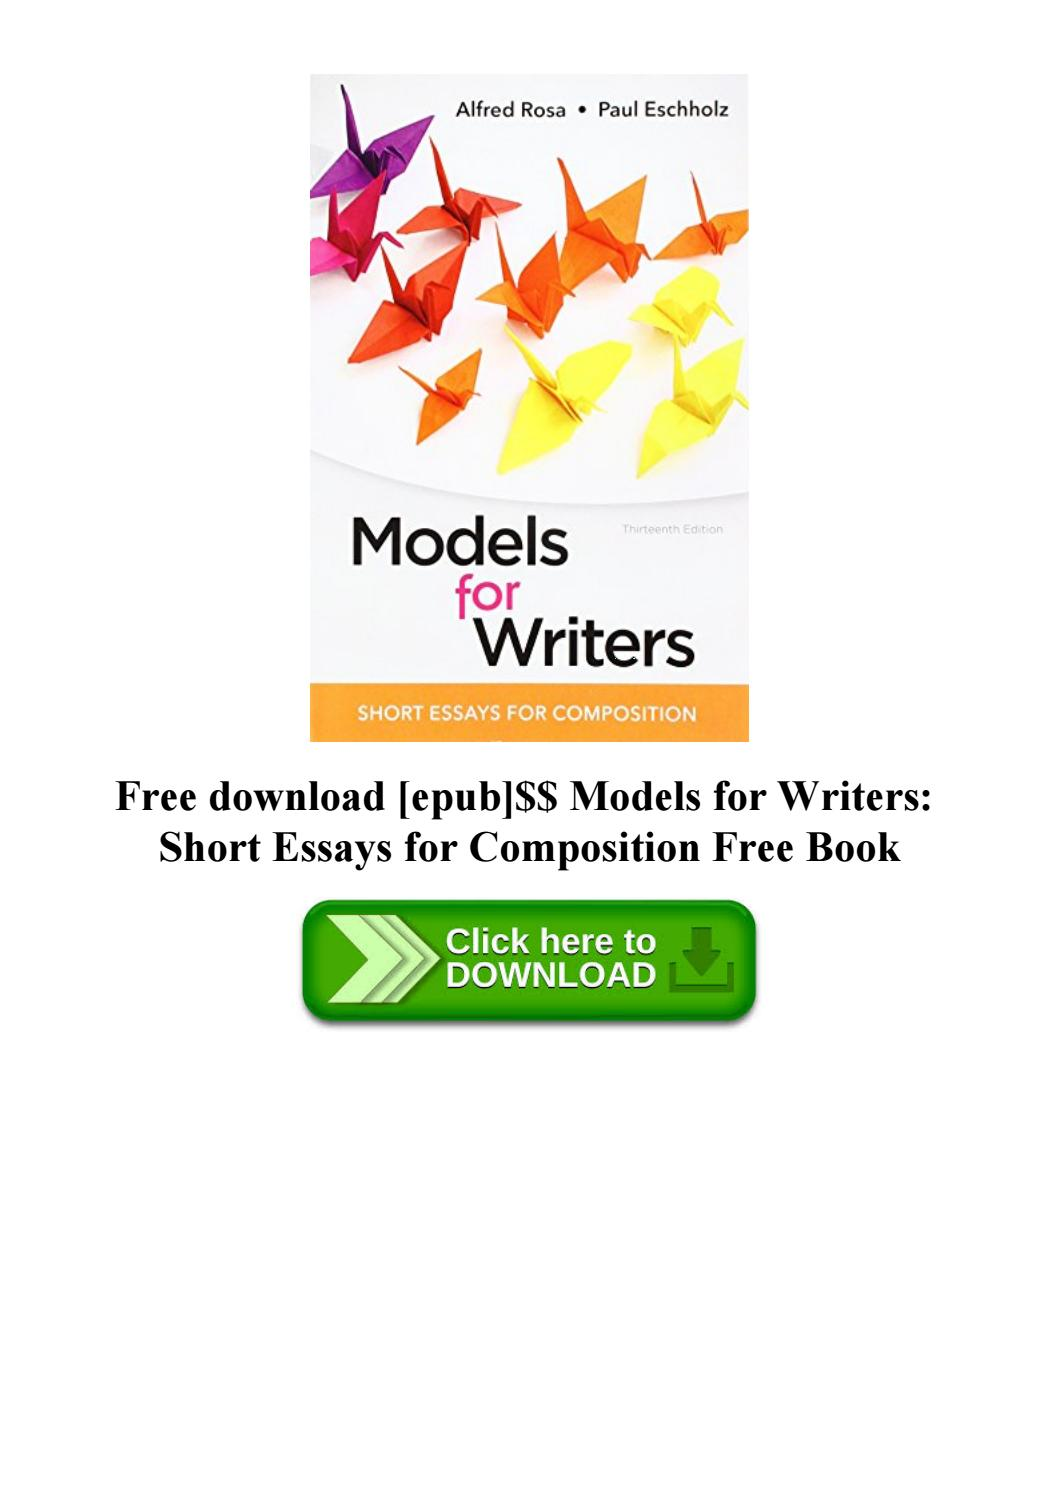 017 Page 1 Essay Example Models For Writers Short Essays Singular Composition 12th Edition 13th Pdf Full